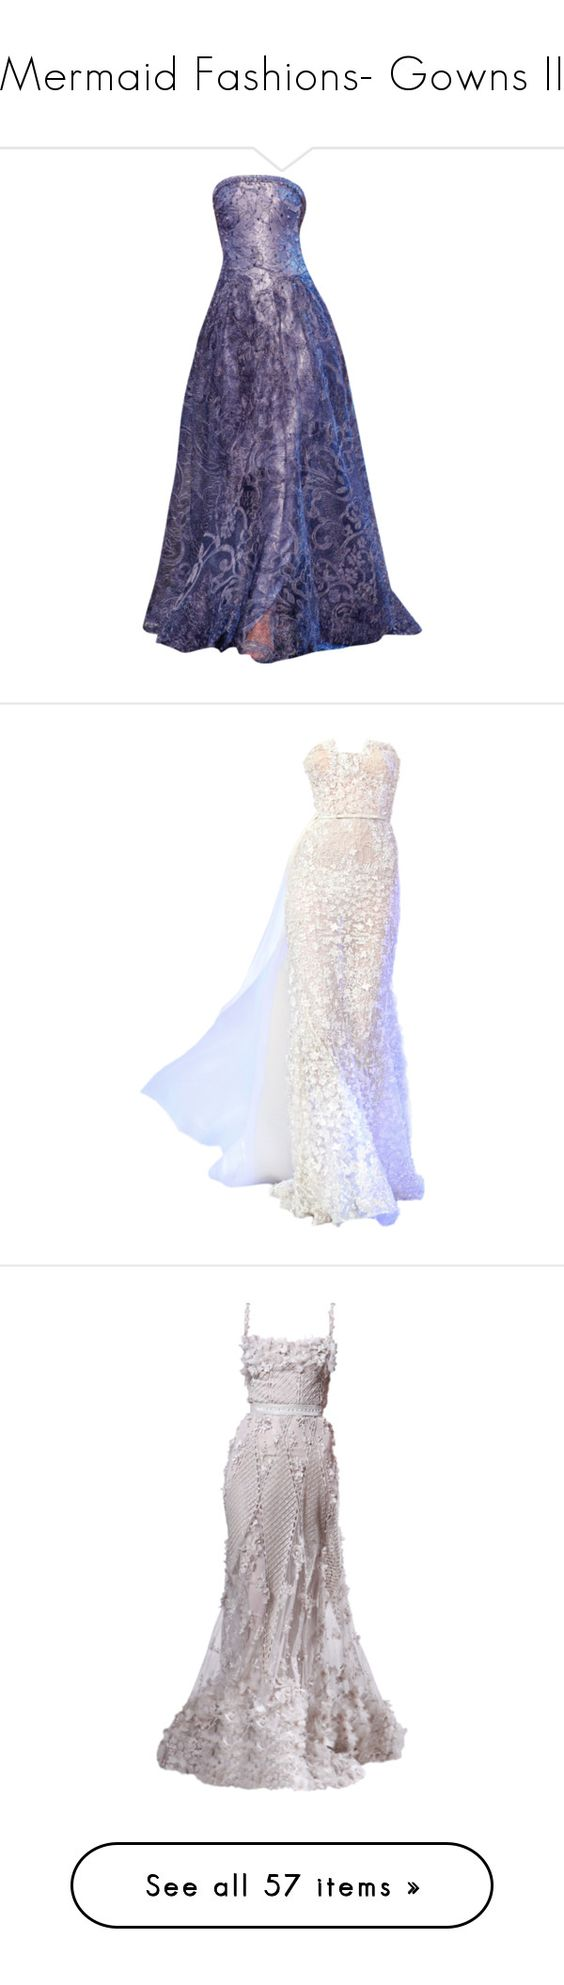 """""""Mermaid Fashions- Gowns II"""" by lunabones ❤ liked on Polyvore featuring dresses, gowns, long dresses, purple, vestidos, purple evening gowns, purple gown, blue ball gown, long tube dress and armani prive dresses"""